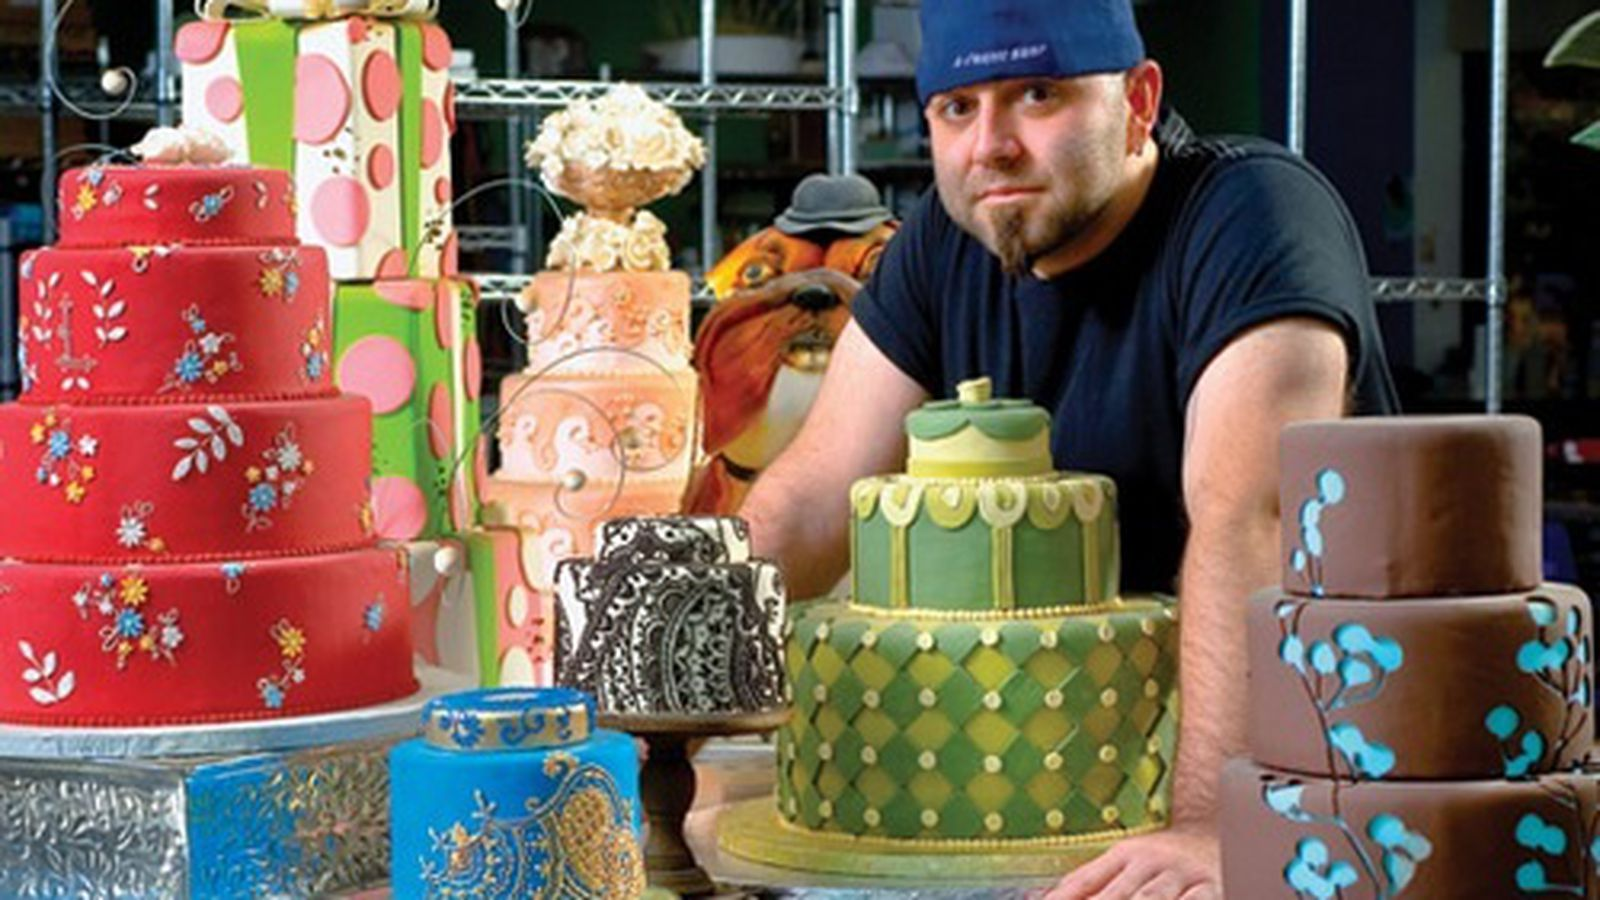 Duff Ace Of Cakes